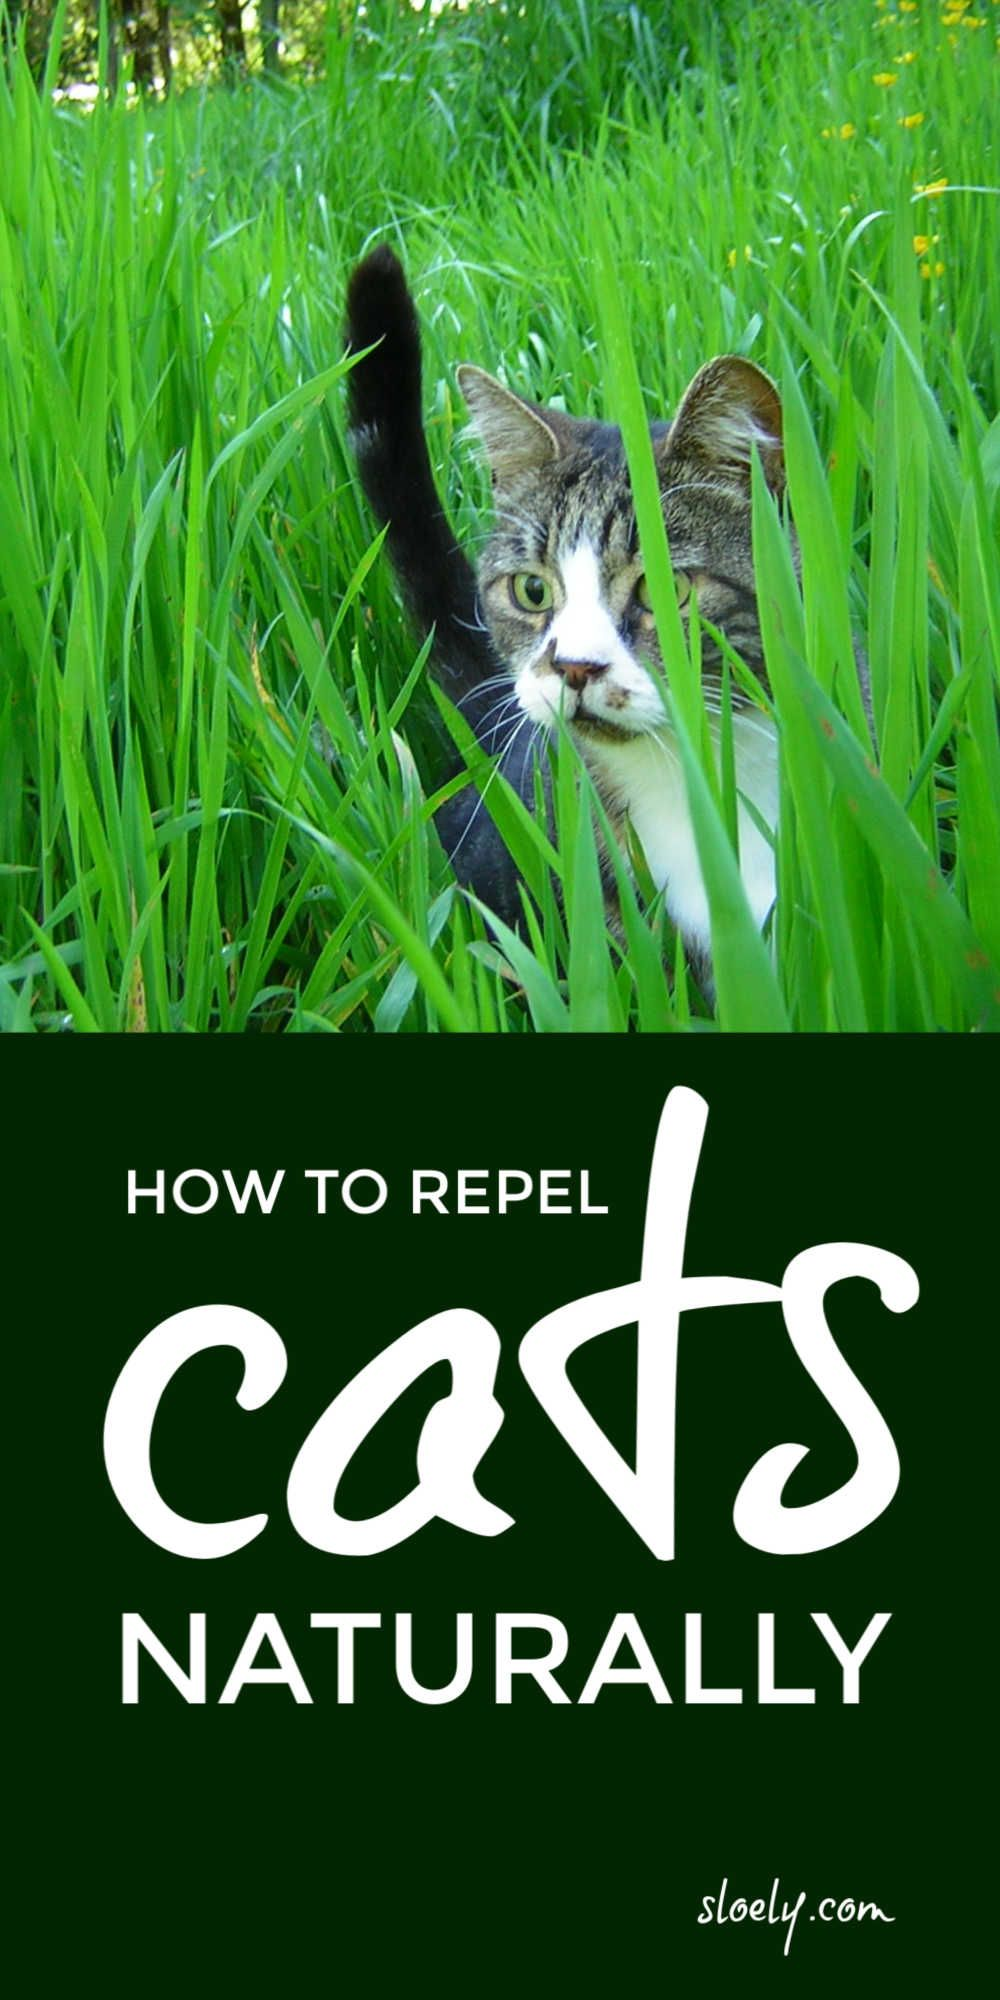 Learn how to repel cats from gardens and yards naturally